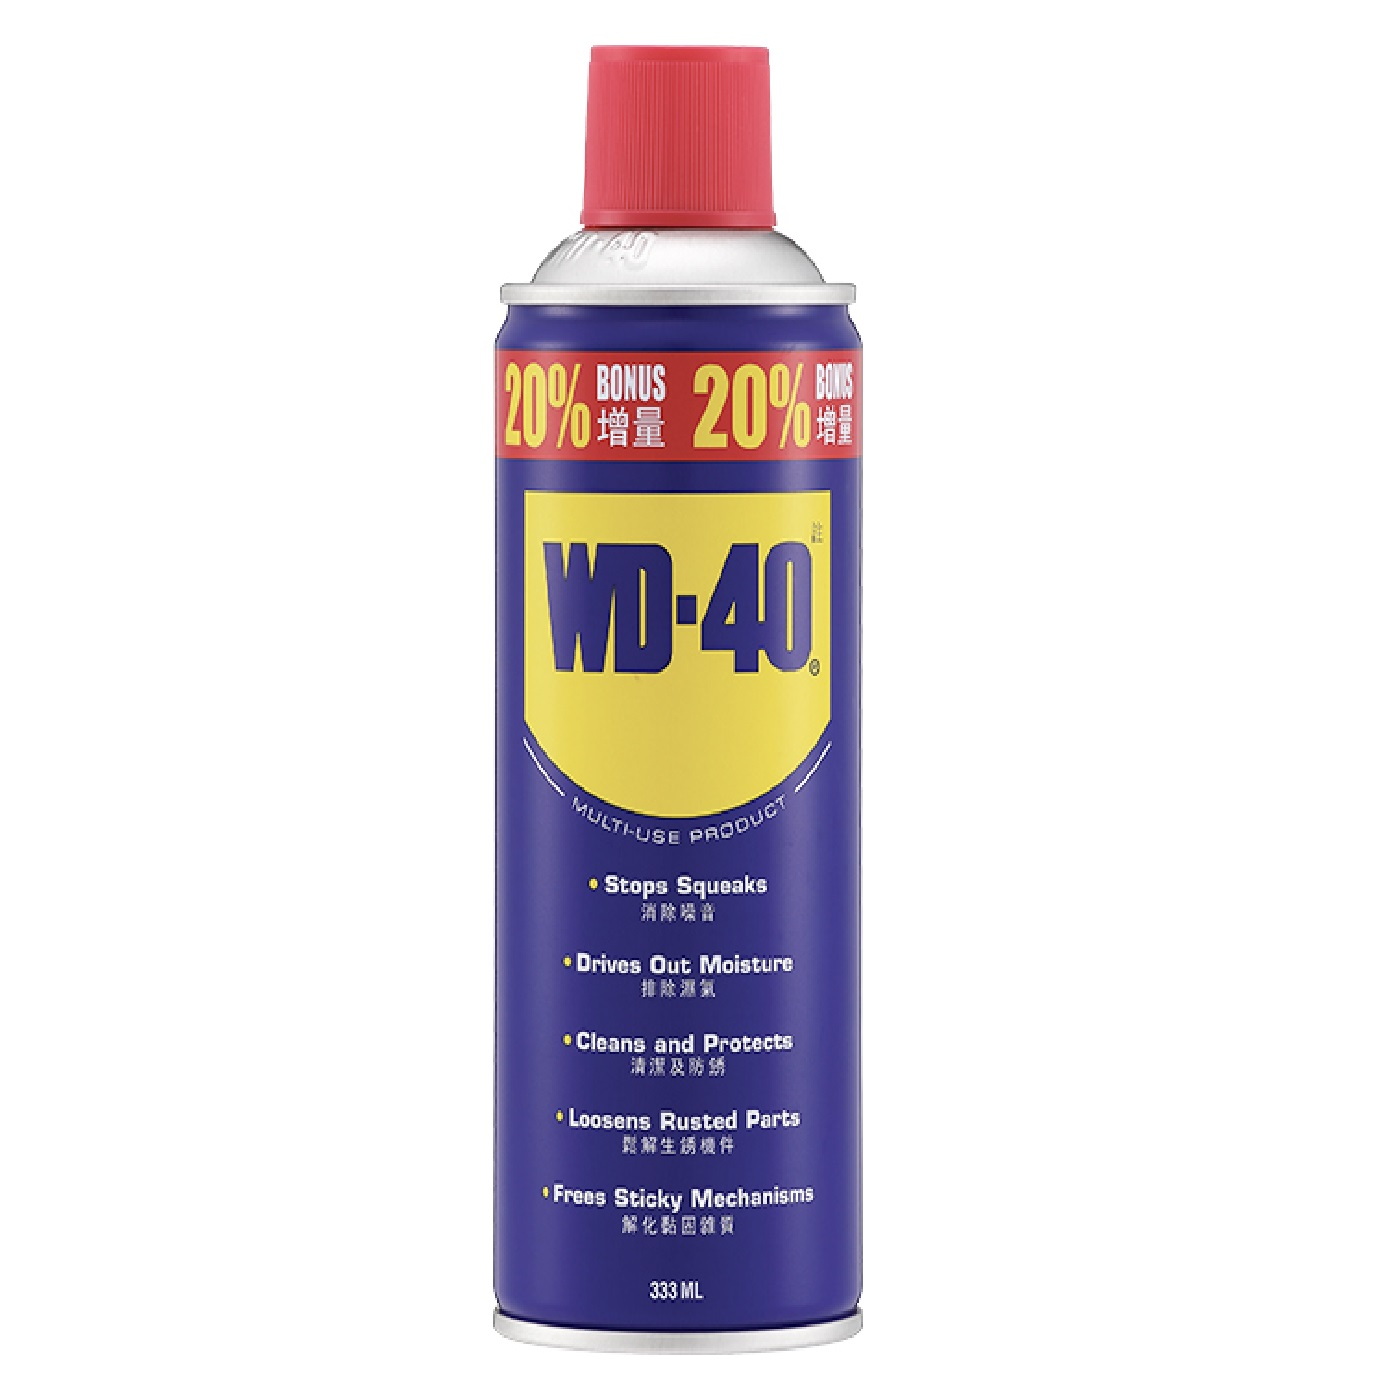 WD40 Multi-Use Product 333ML